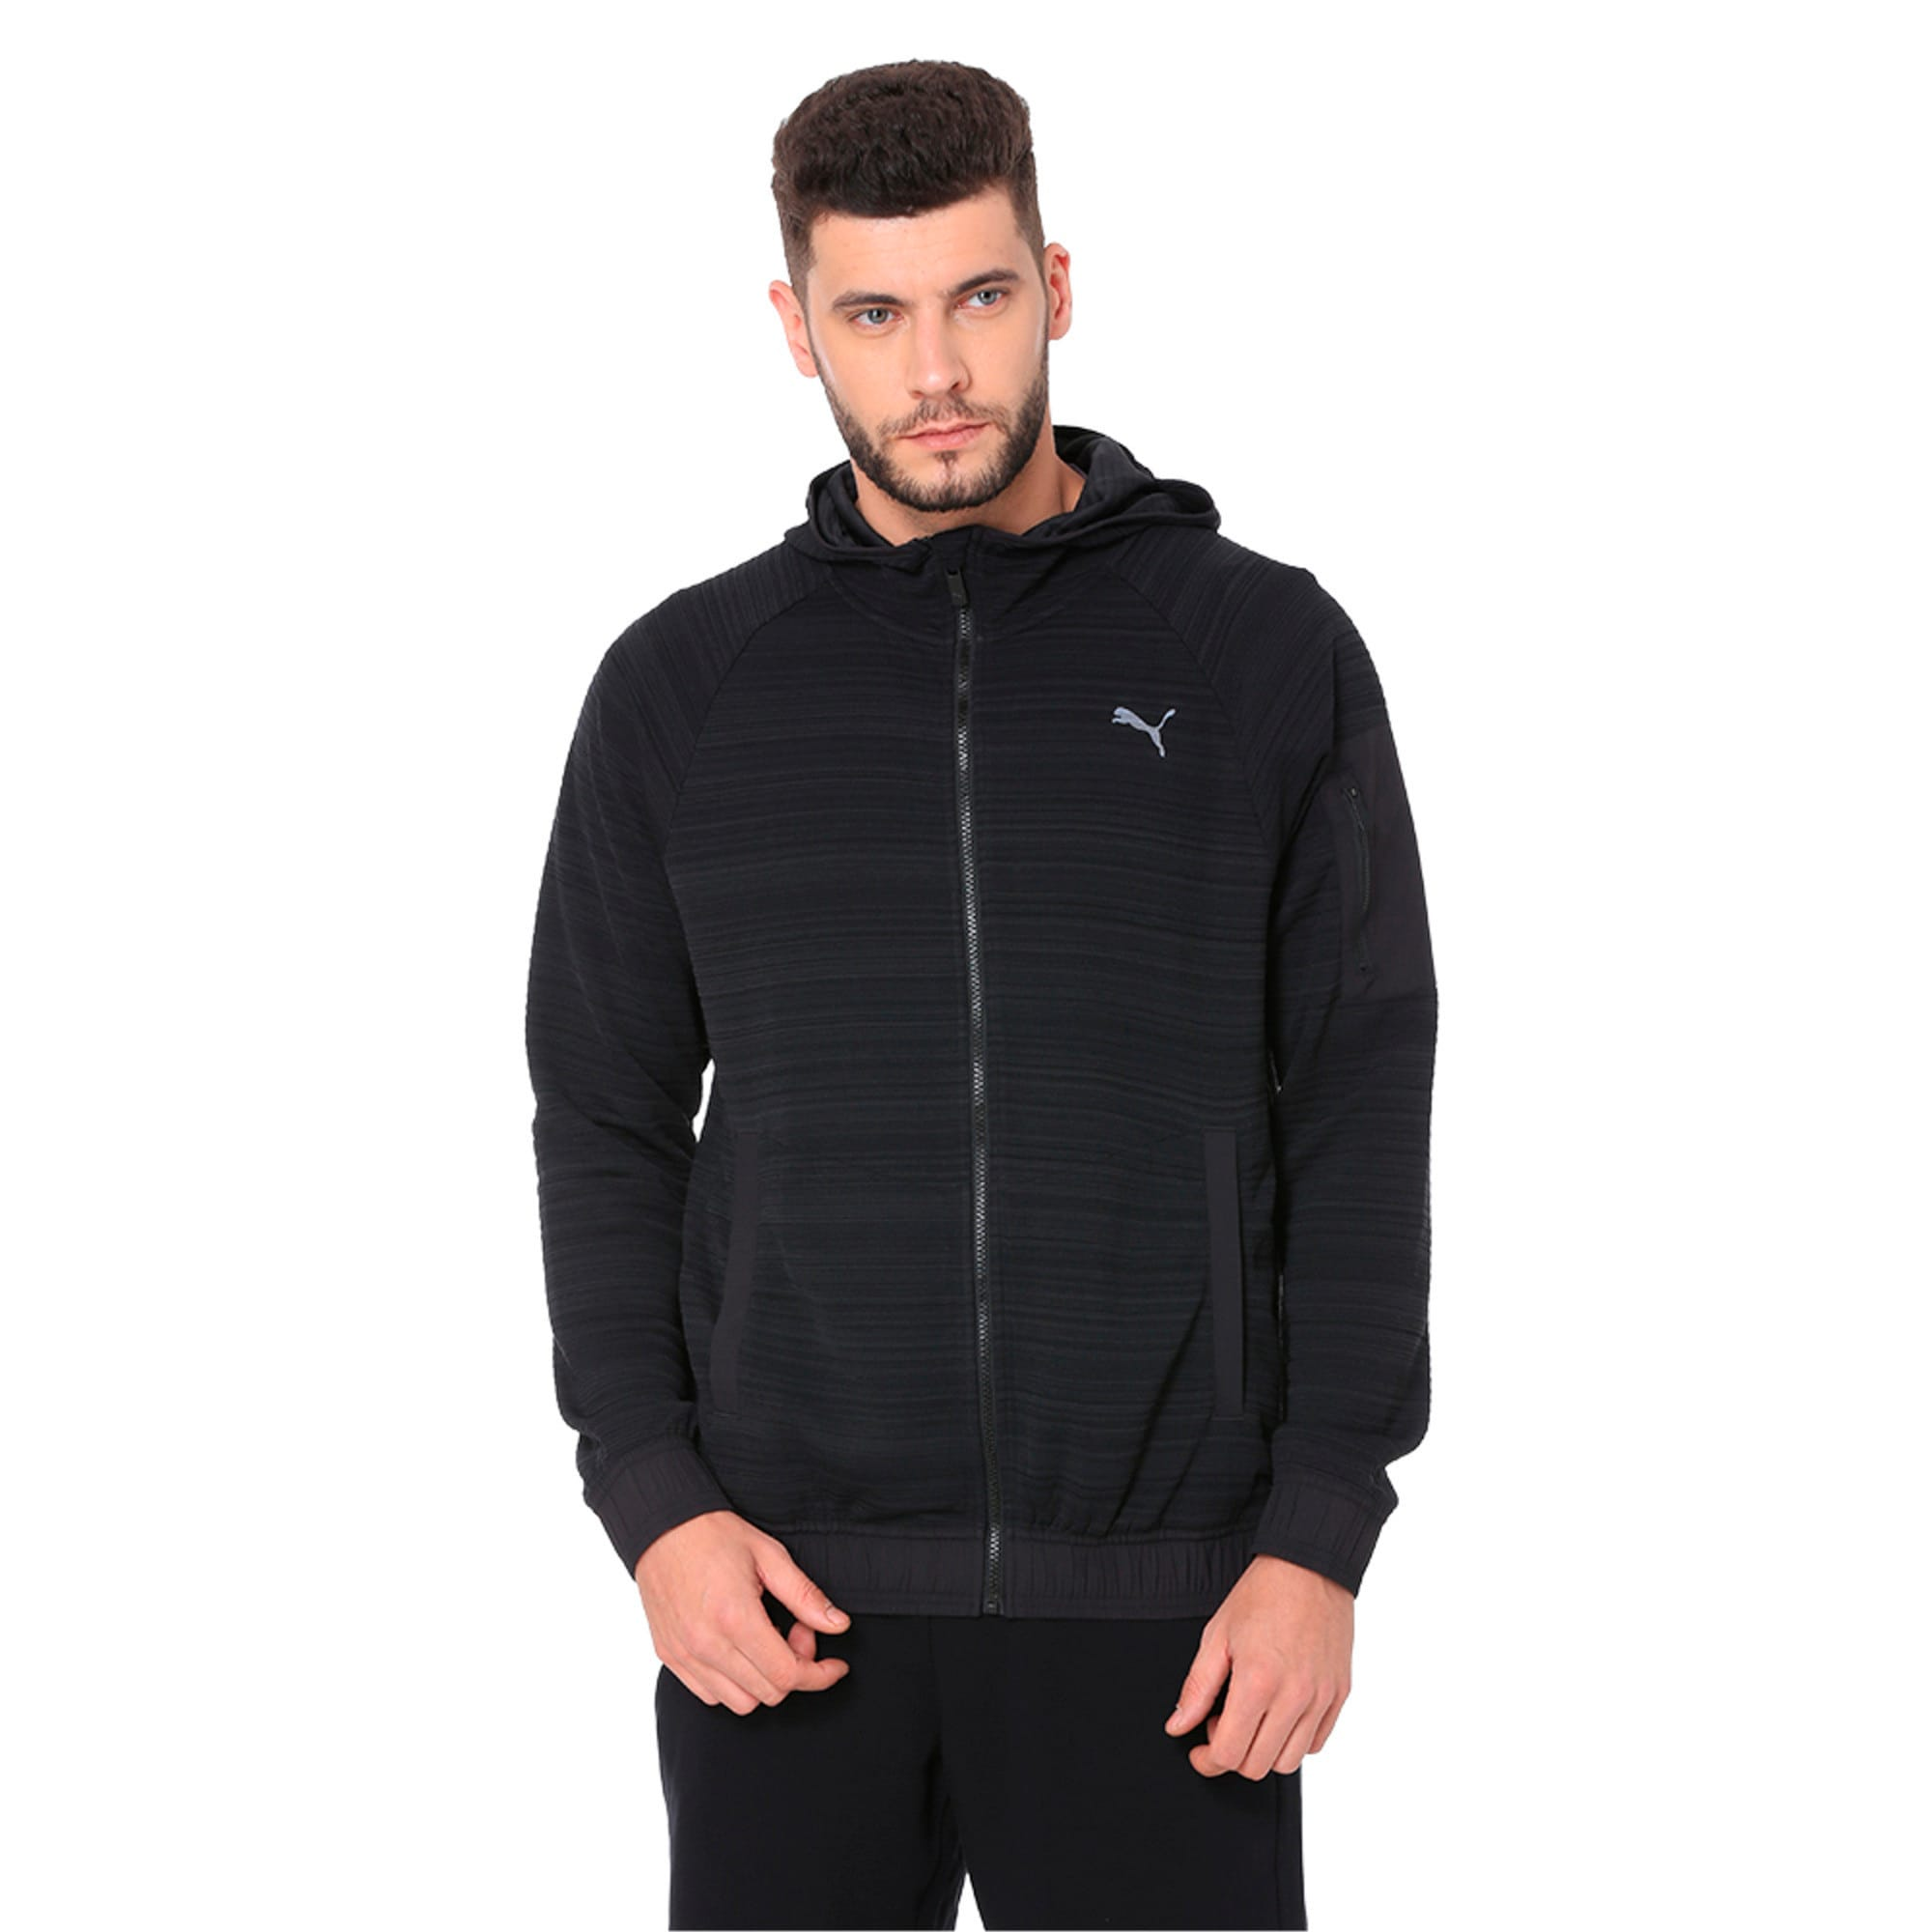 Thumbnail 1 of Energy Men's Full Zip Hoodie, Puma Black Heather, medium-IND